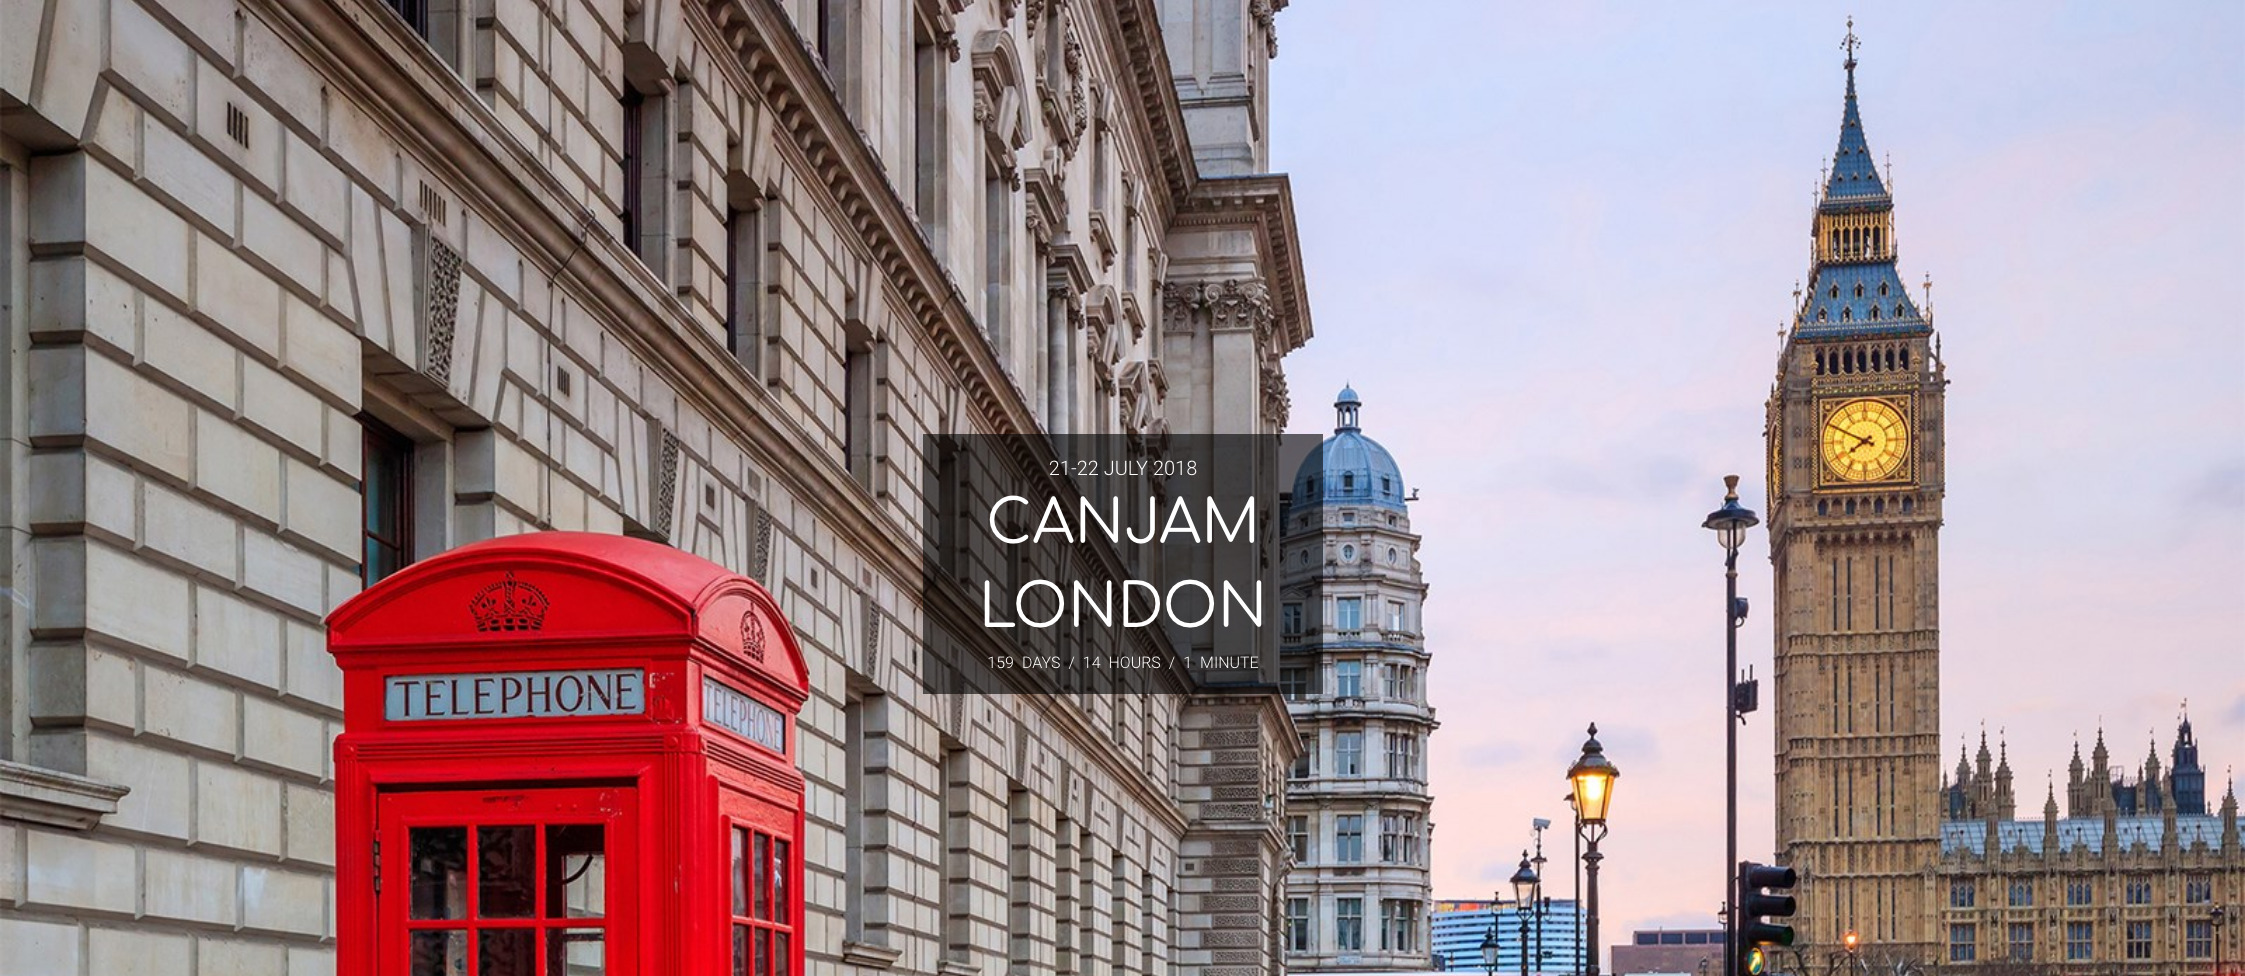 CanJam London